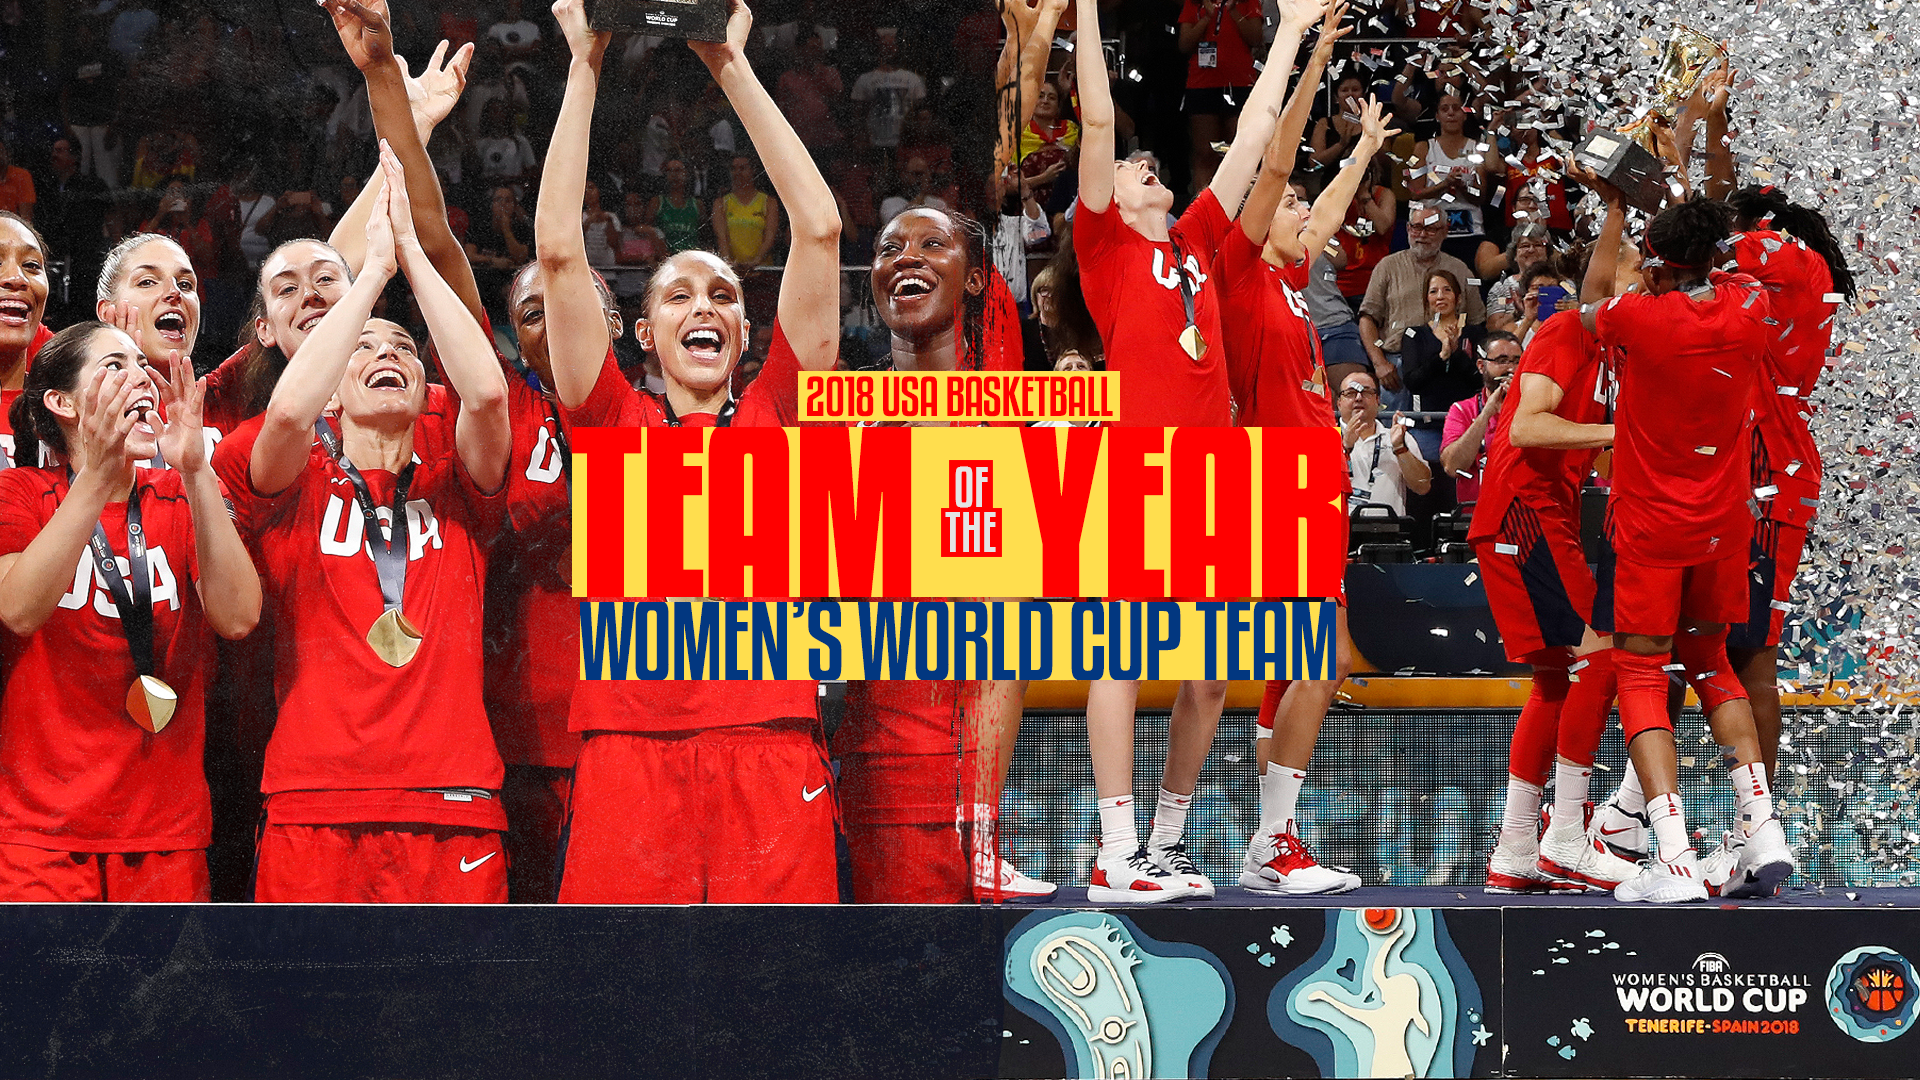 ff3f31df4 USA Women s World Cup Team Honored as the 2018 USA Basketball Team of the  Year